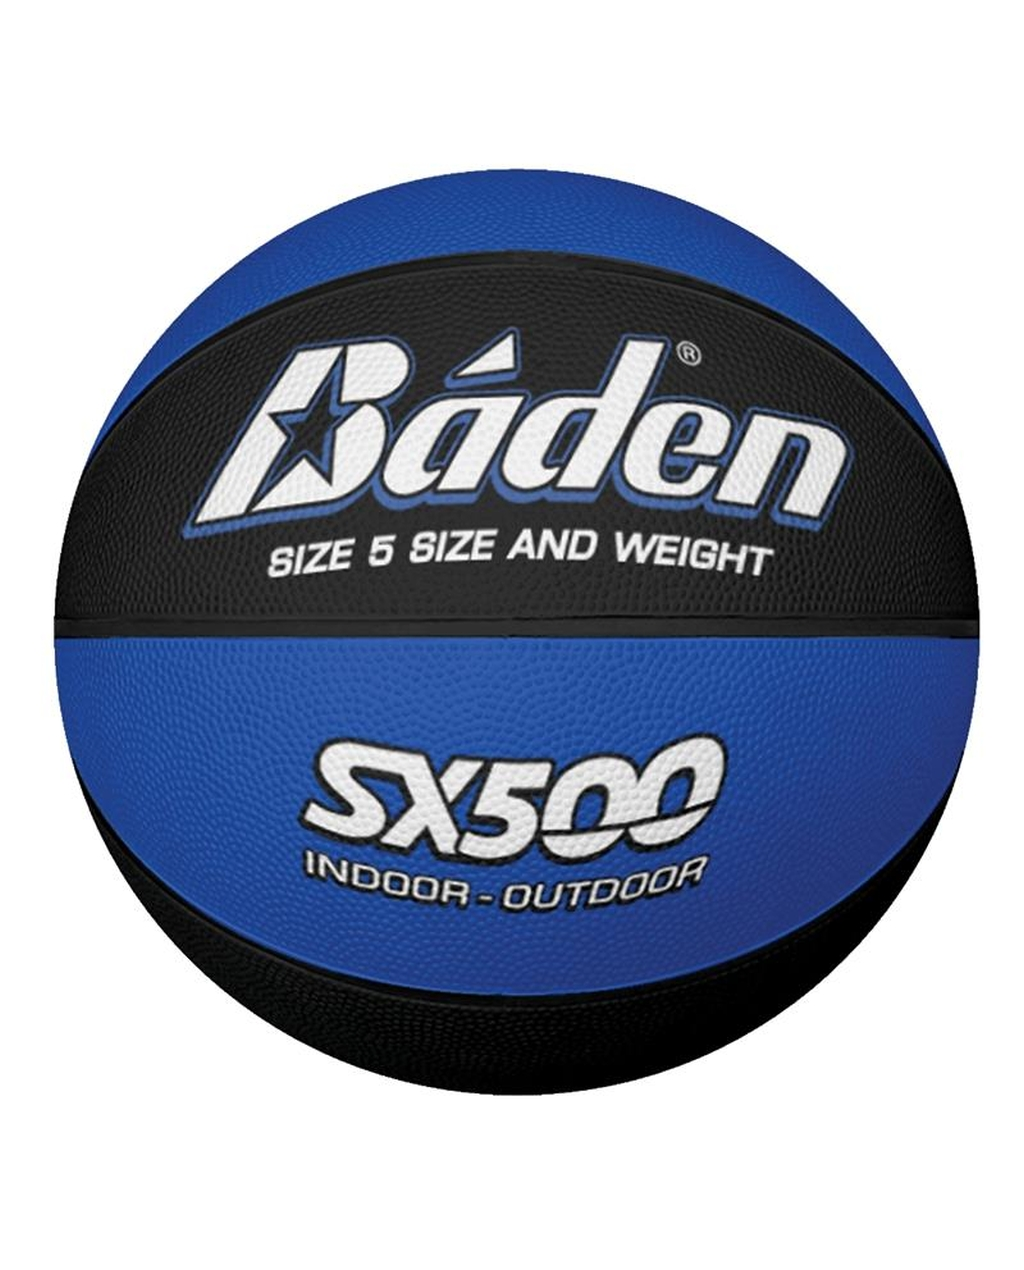 Baden SX Series Basketball Size 6